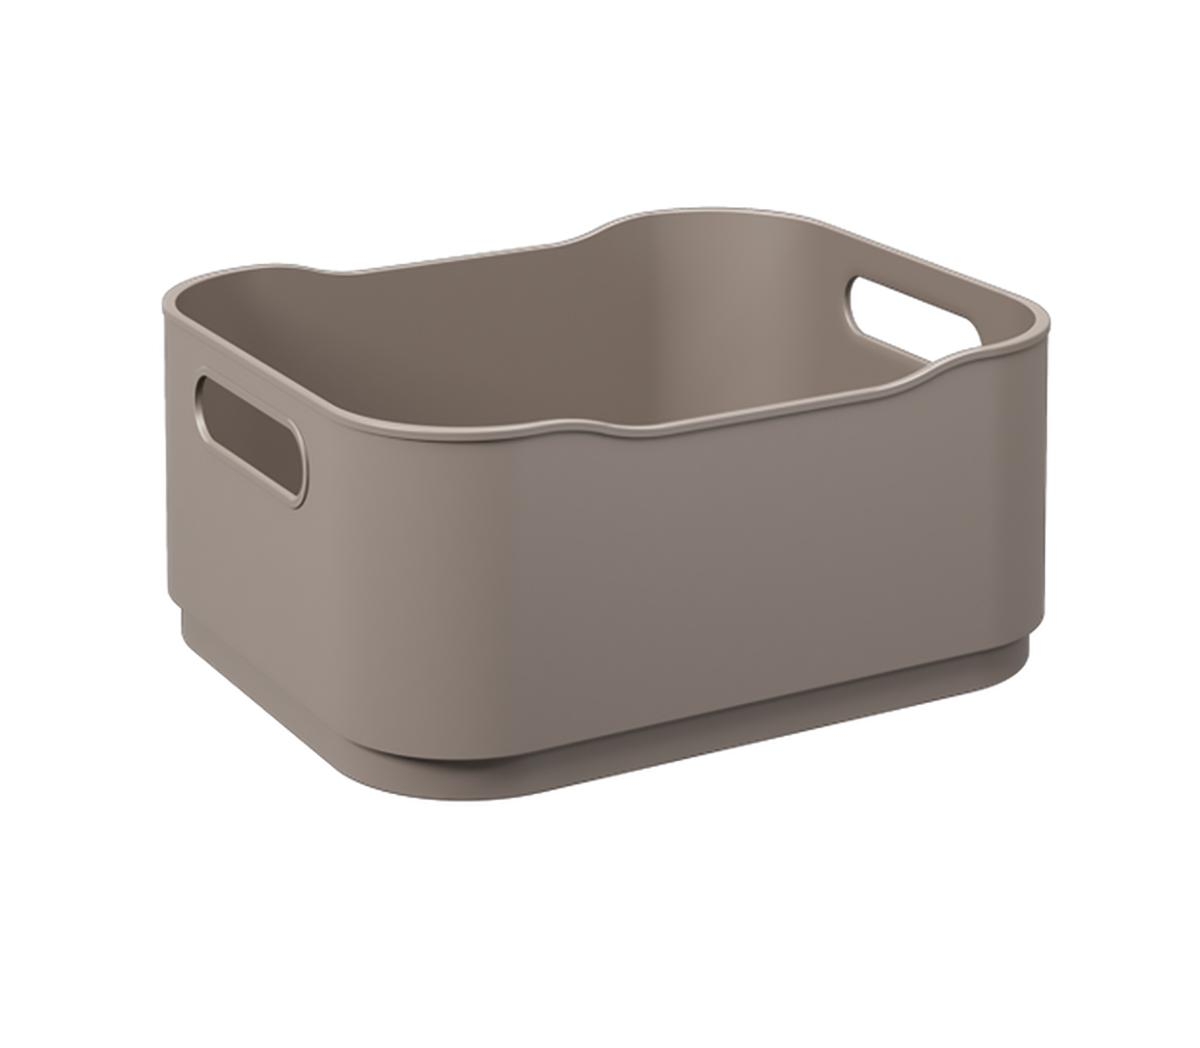 Cesta Fit Pequena Warm Gray Coza